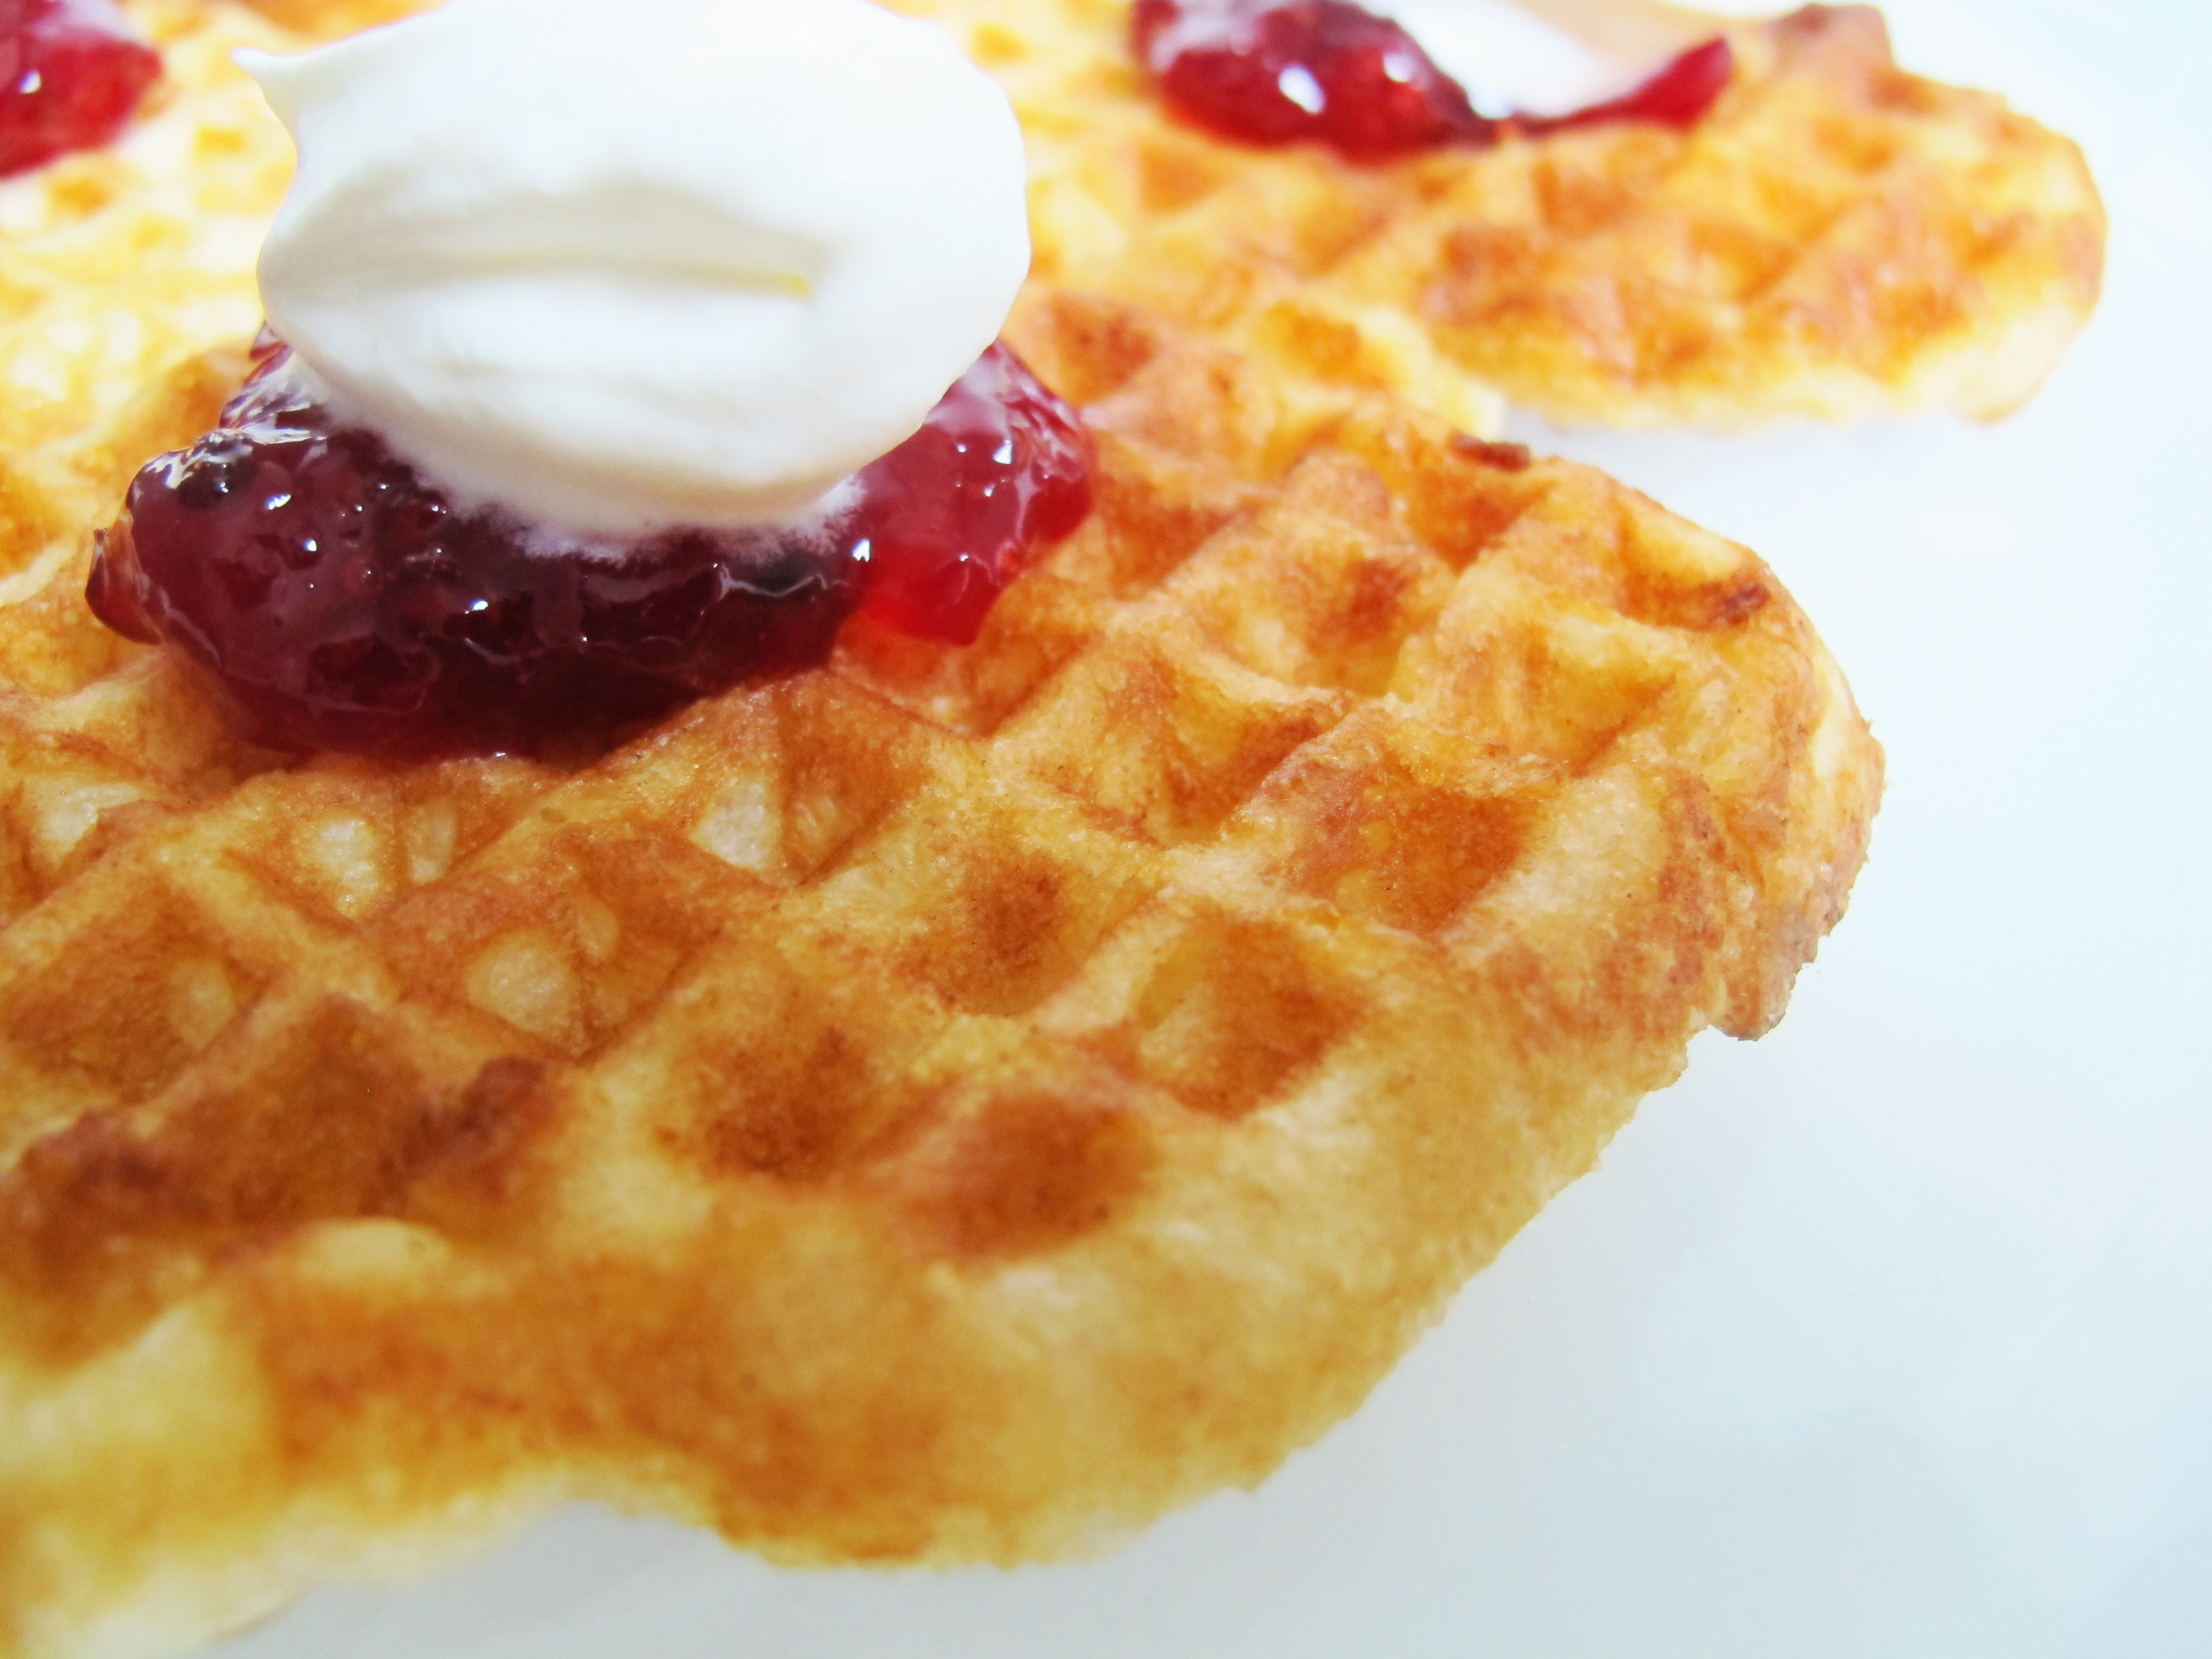 Waffles + The Annunciation = Waffle Day | semiswede